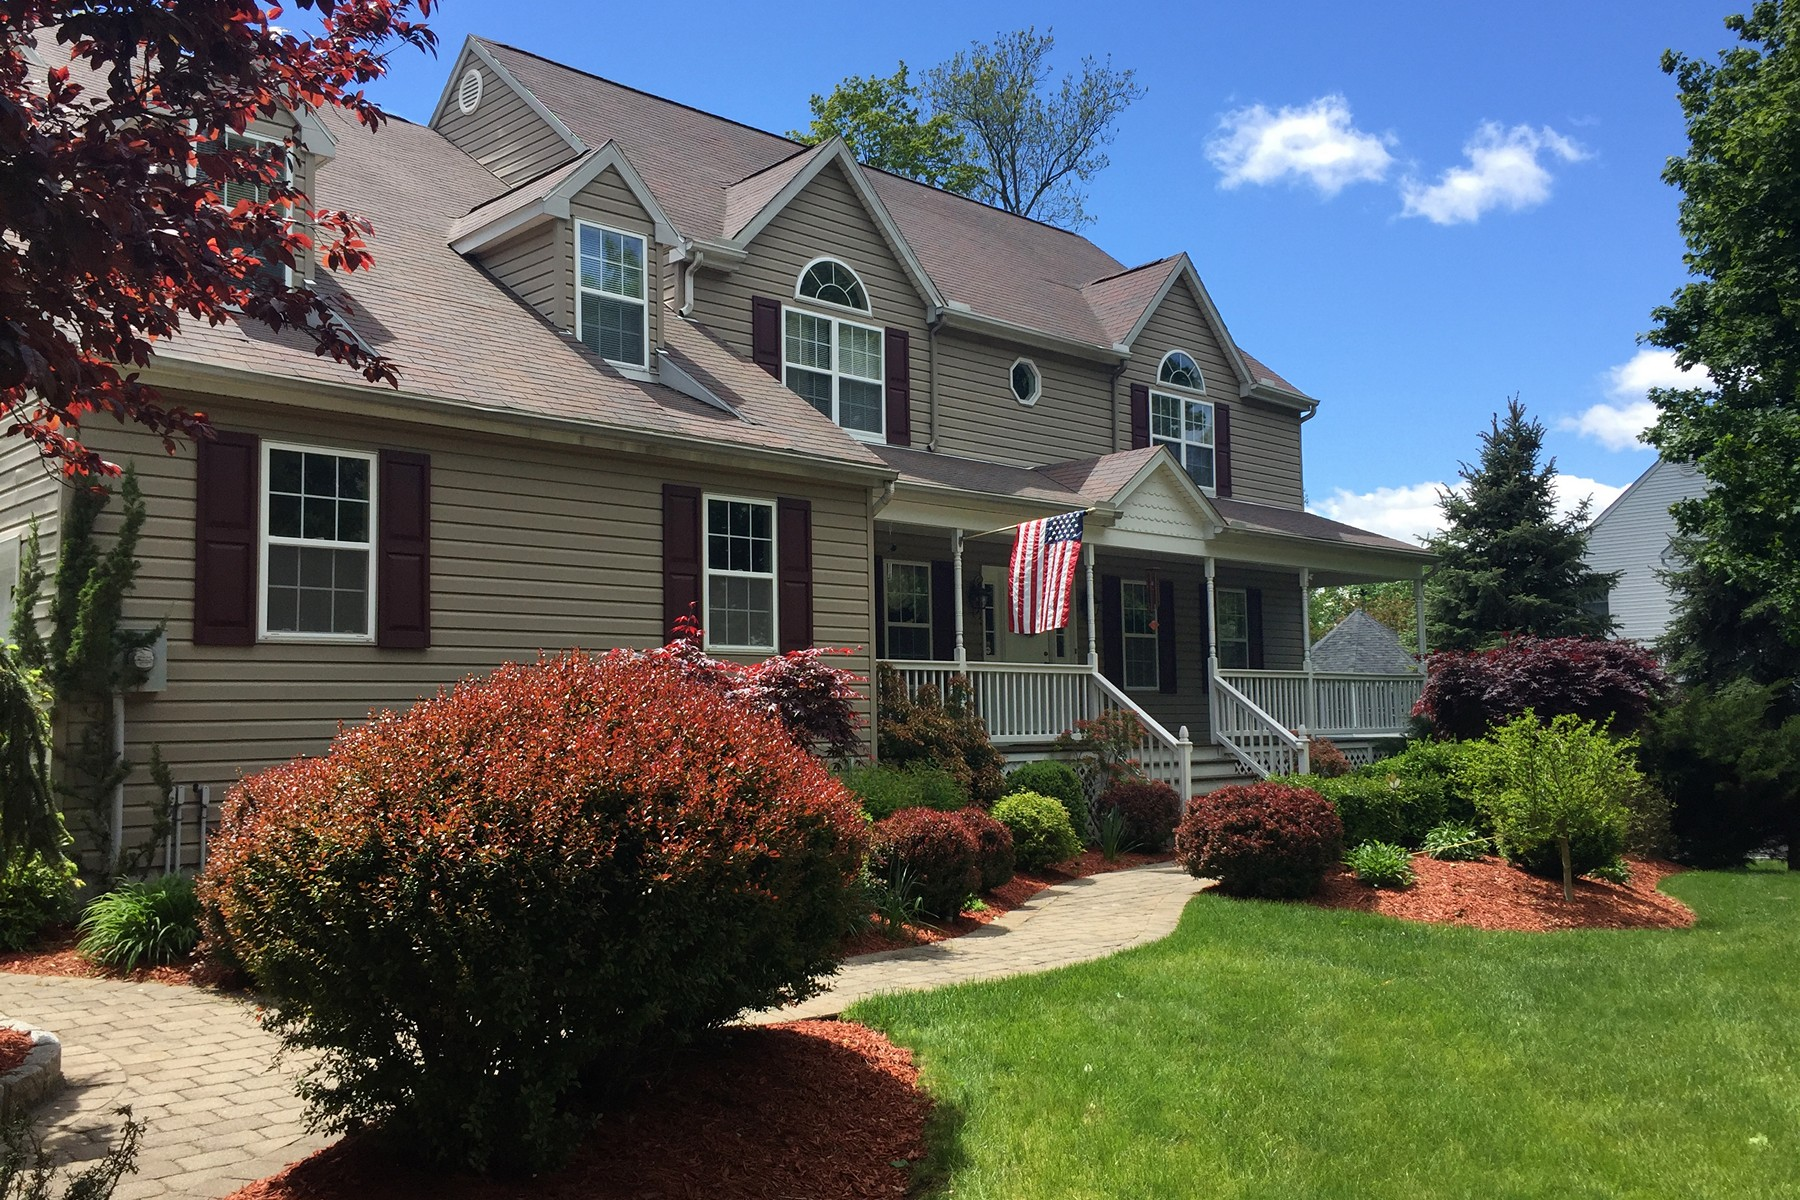 Single Family Home for Sale at Picture Perfect Colonial 40 Pamela Road Cortlandt Manor, New York 10567 United States